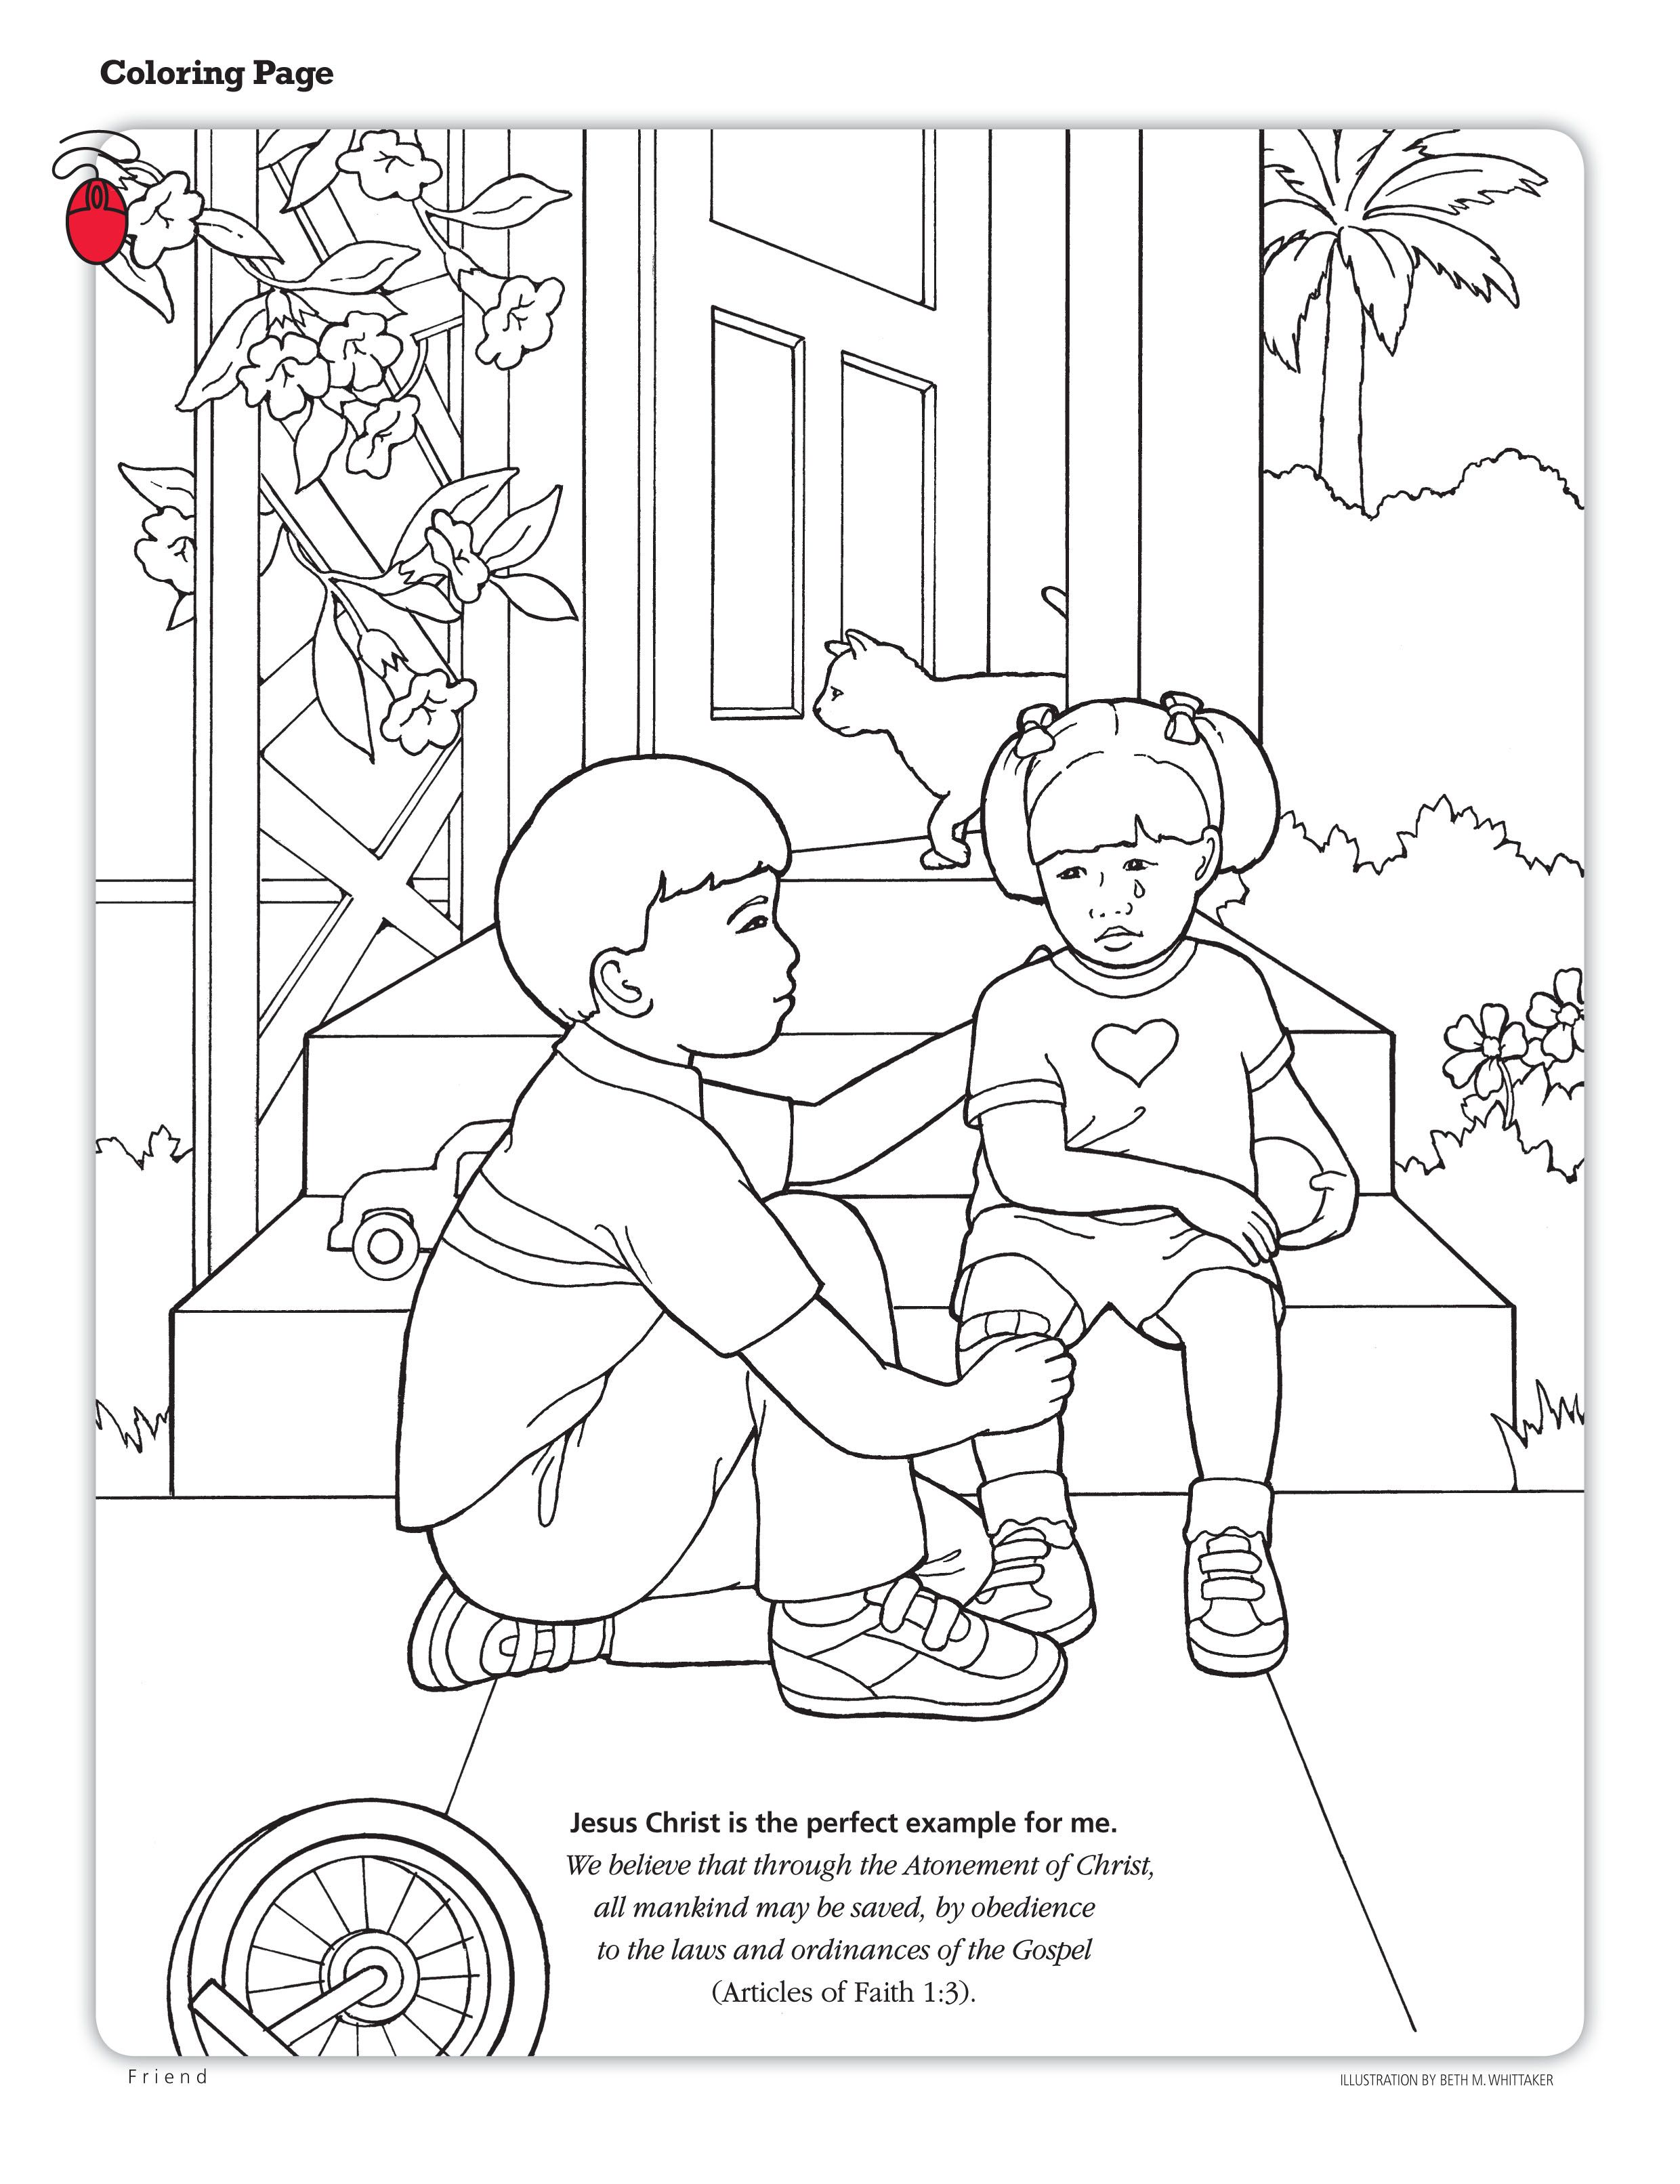 Coloring Page About The Atonement   Lesson 22: The Atonement